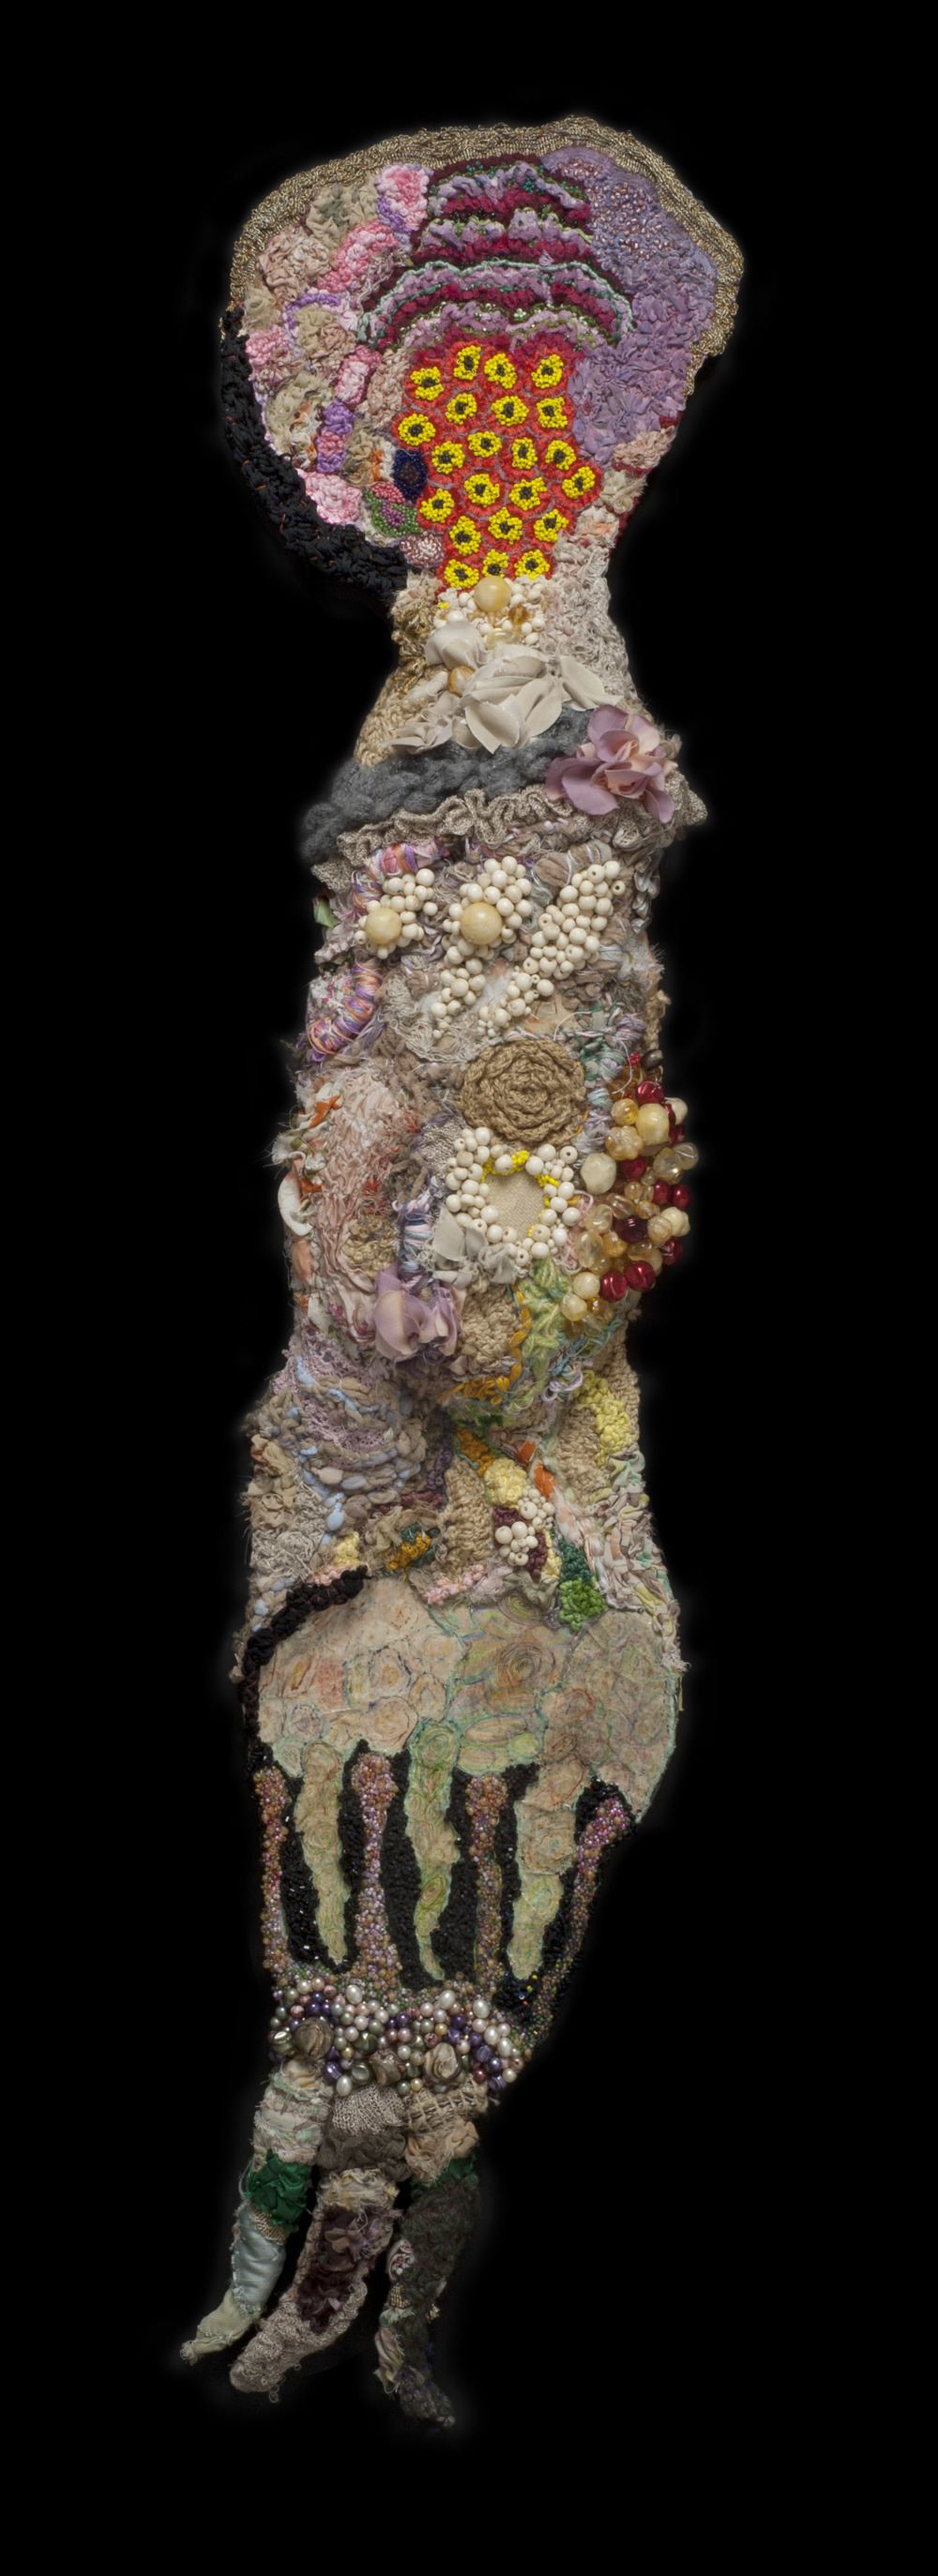 Sandra Sheehy Untitled, 2006 Cotton, wool, paper and beads 45 x 8 x 2.25 inches  /  114.3 x 20.3 x 5.7 cm  /  SSe 49